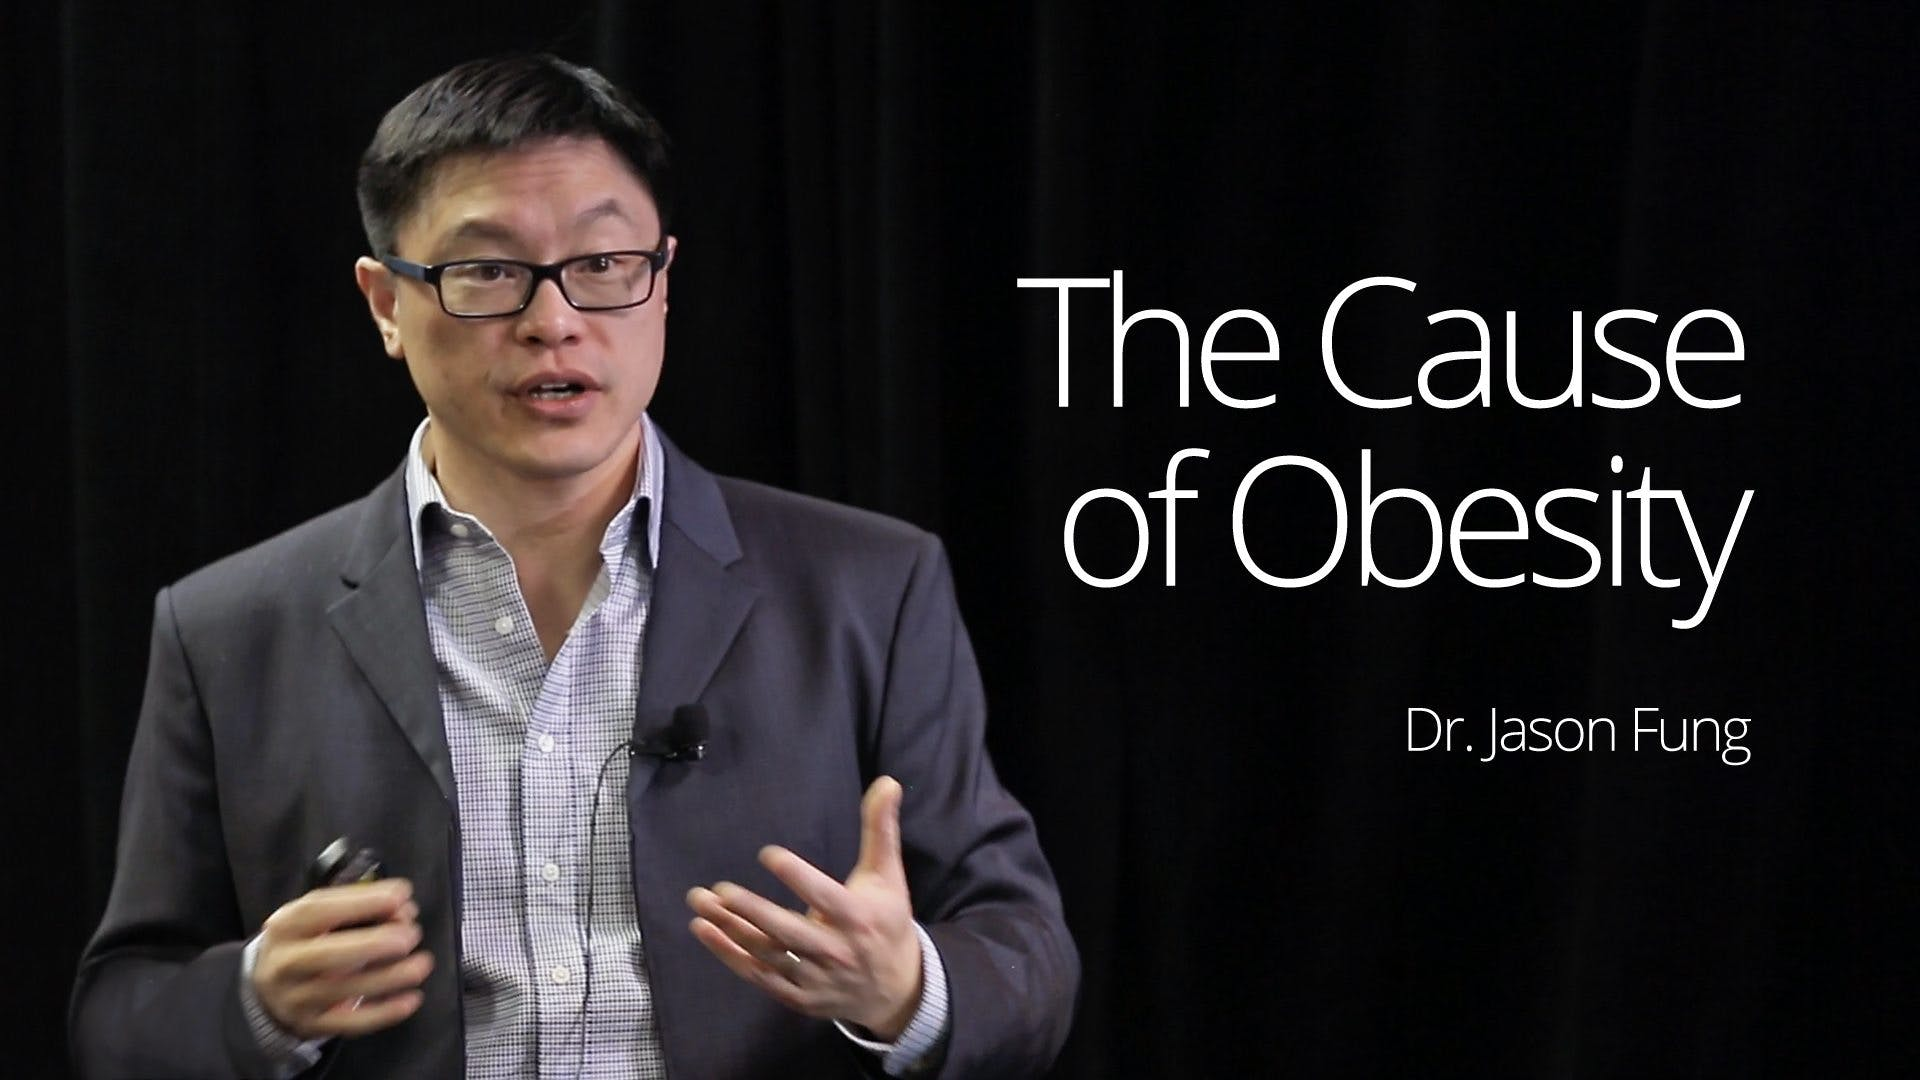 The Etiology of Obesity – Dr. Jason Fung